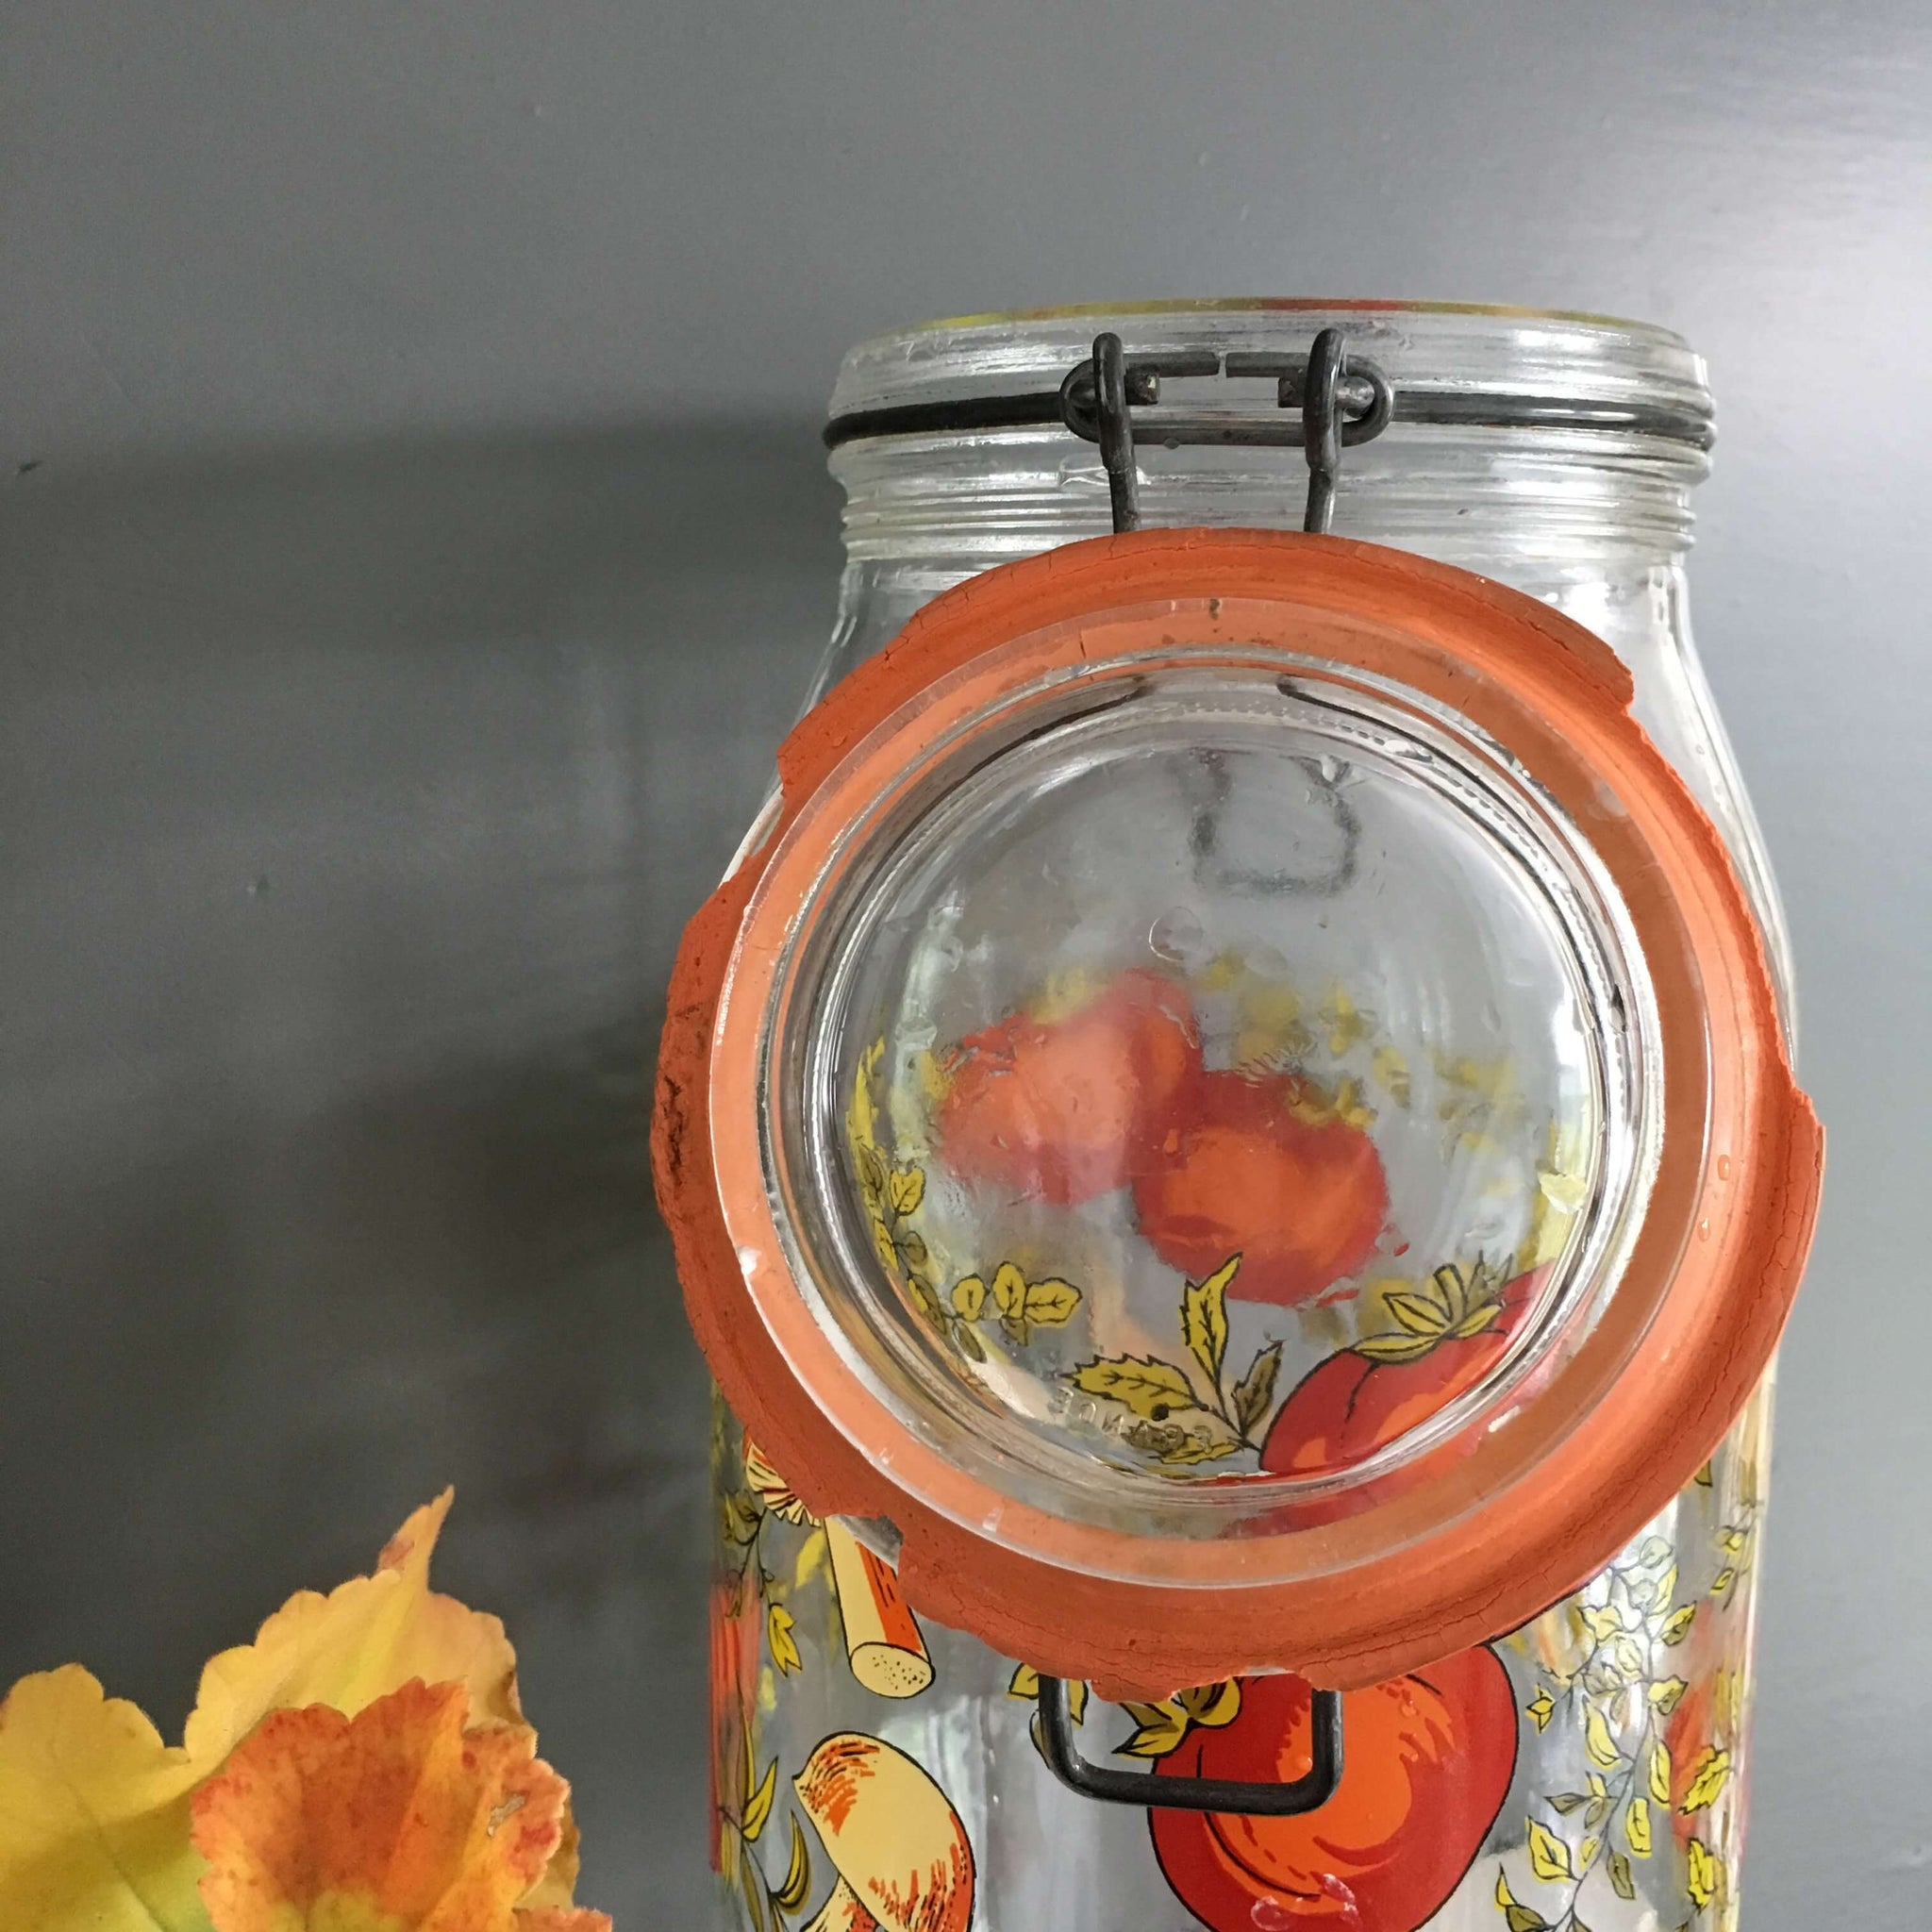 Vintage Spice of Life Canning Jar - Made in France by ARC - 2 Litre Size Storage Container